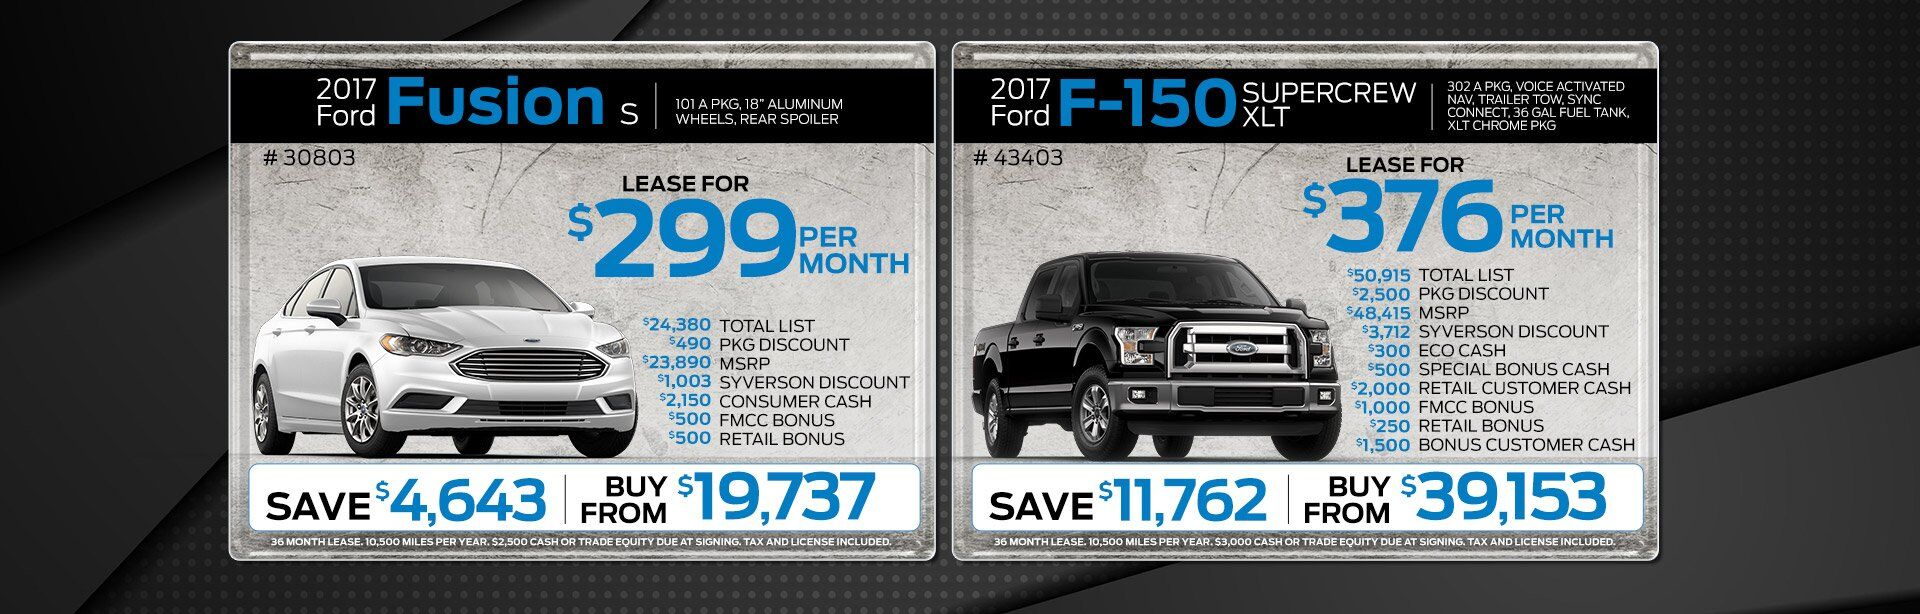 April Ford Specials at Dave Syverson Auto Center